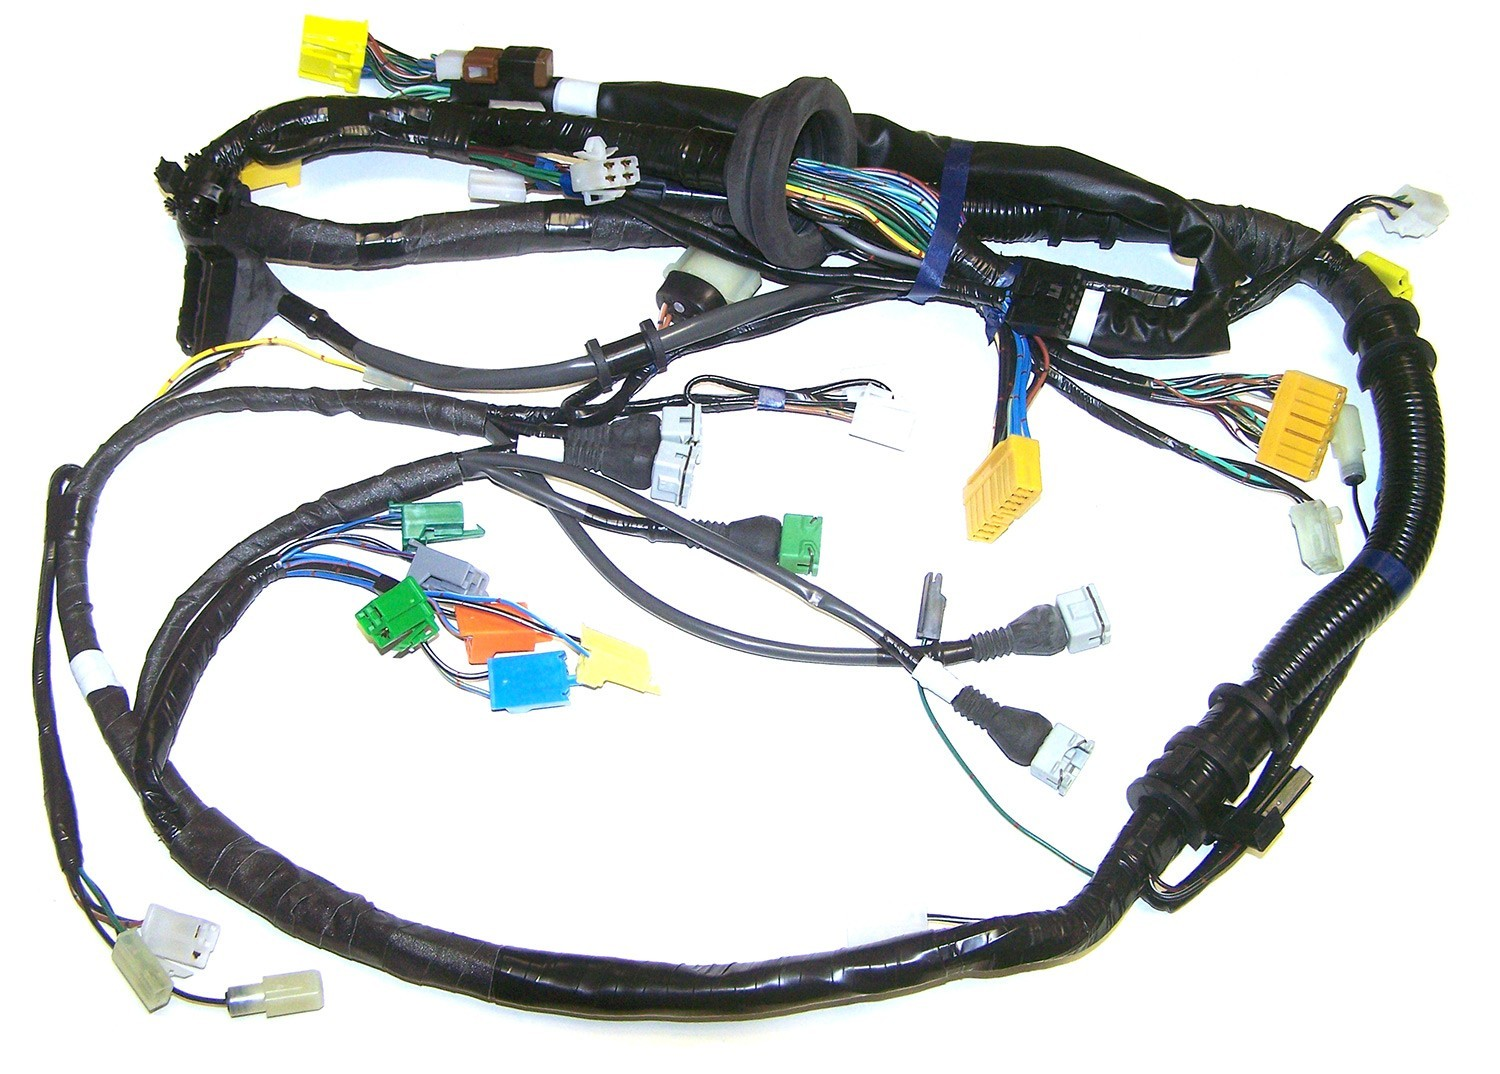 N332 18 051KDetail 87 88 turbo rx7 engine wiring harness (n332 18 051k) engine wiring harness at webbmarketing.co